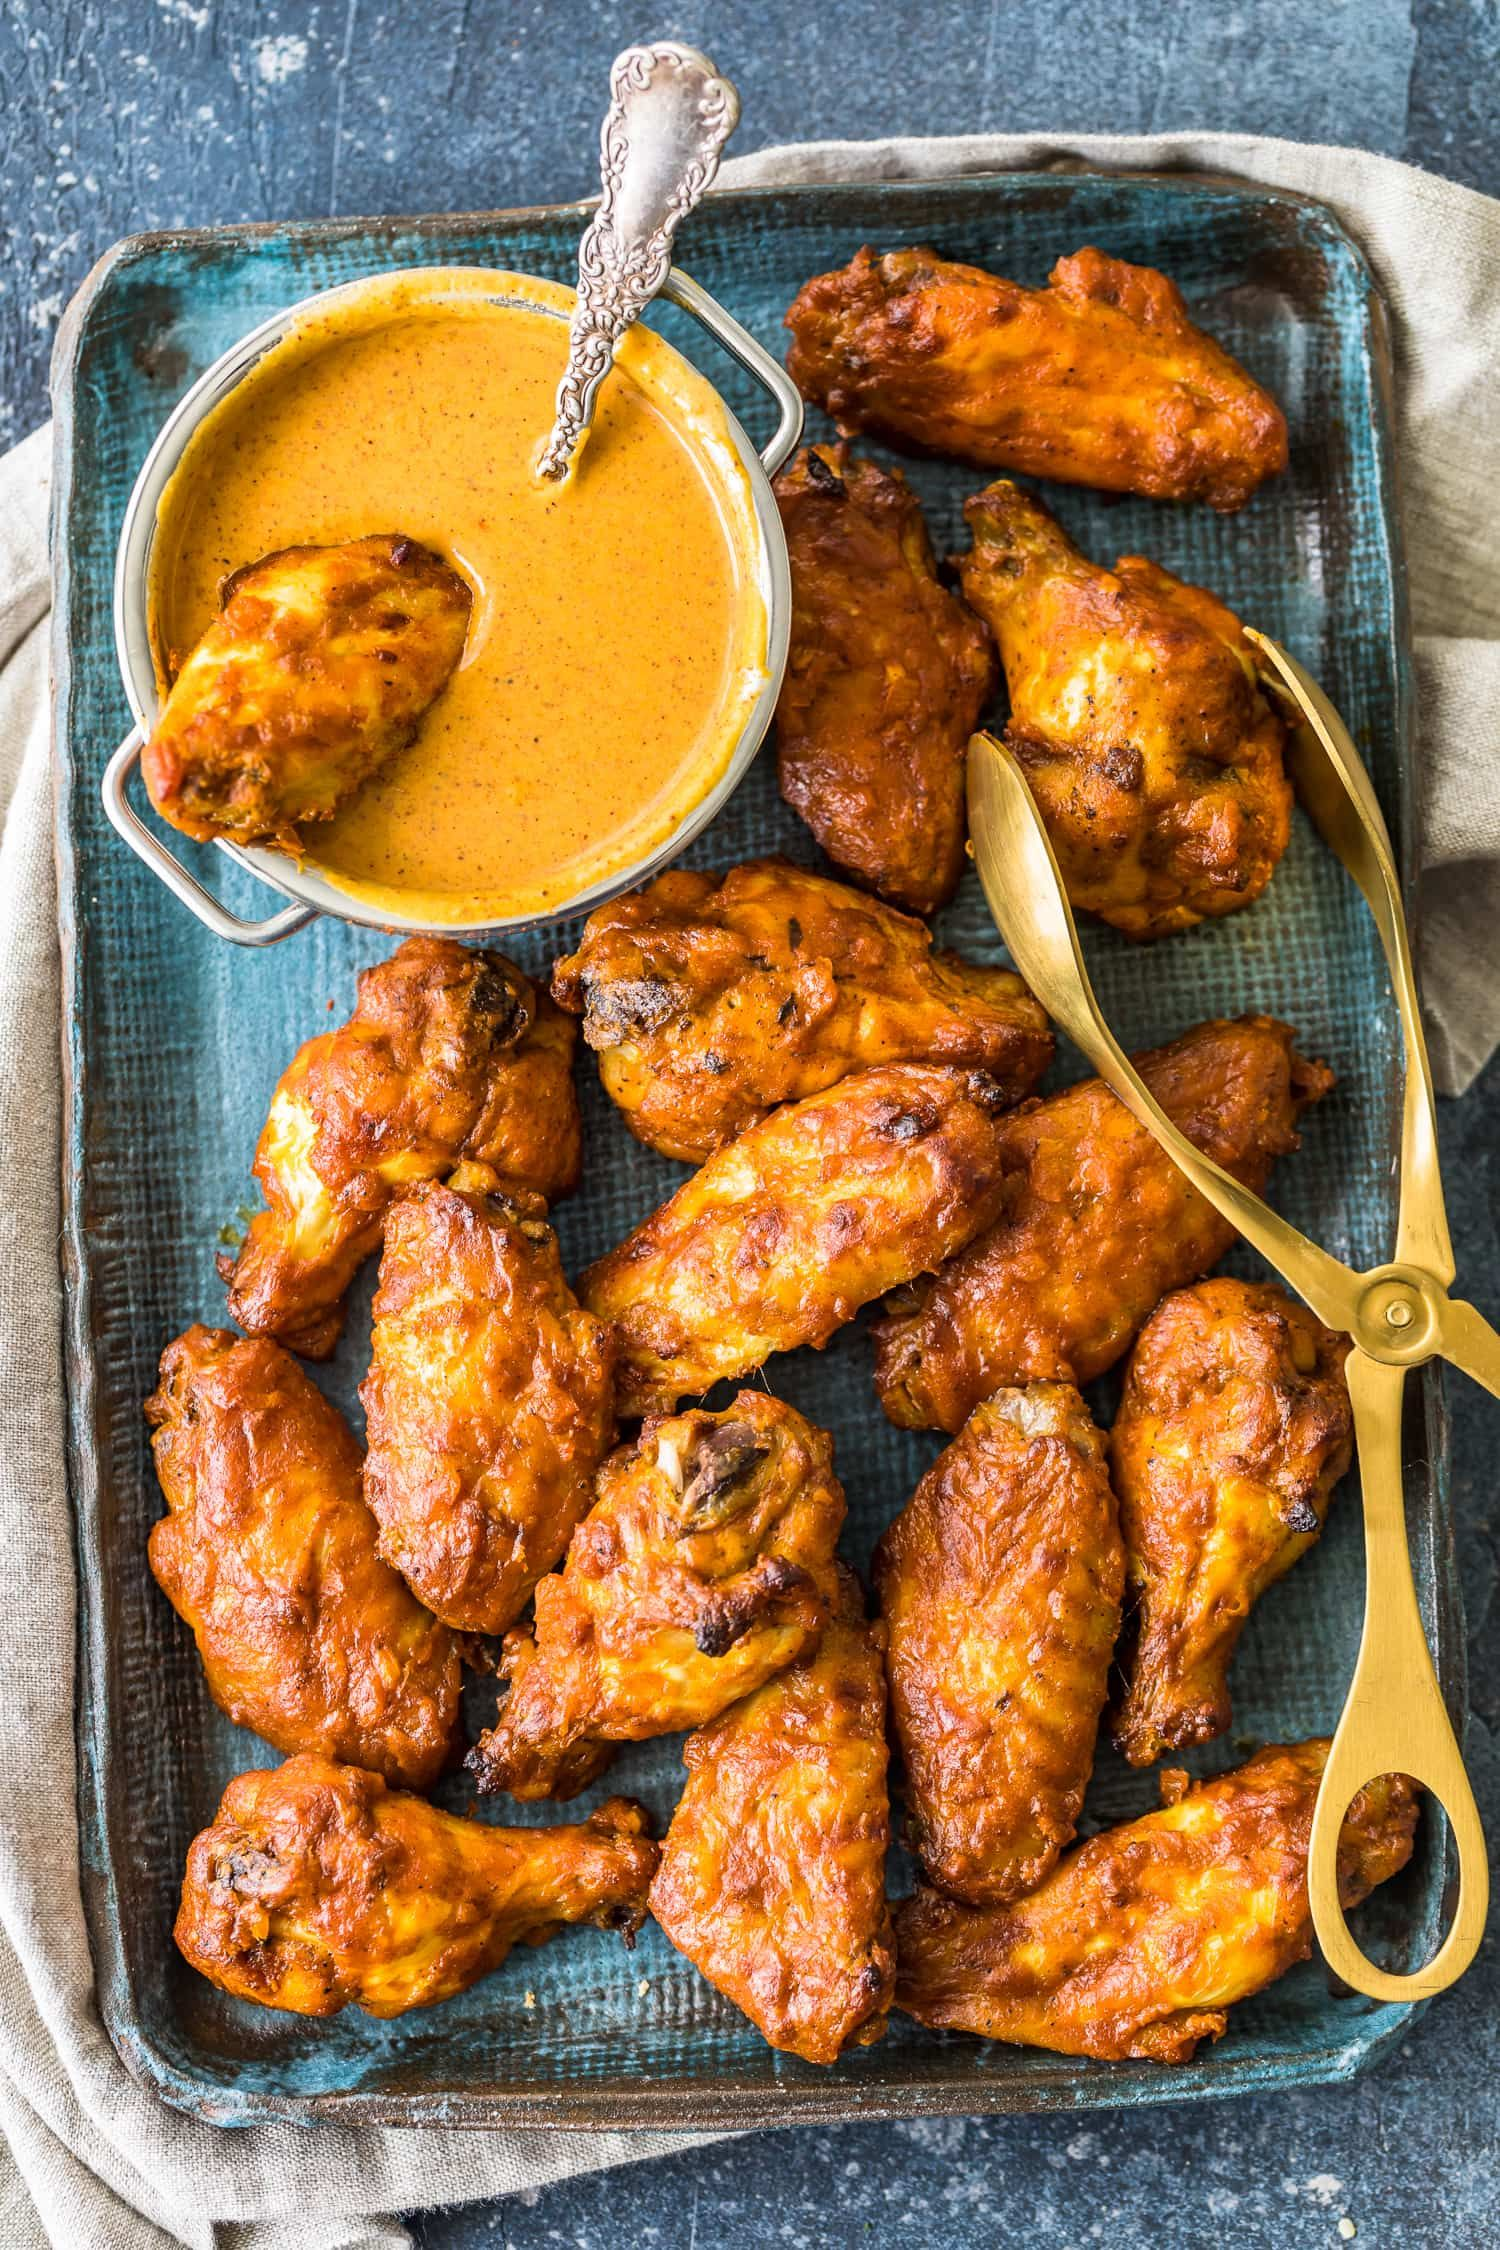 Chicken tikka masala baked wings are the perfect fusion